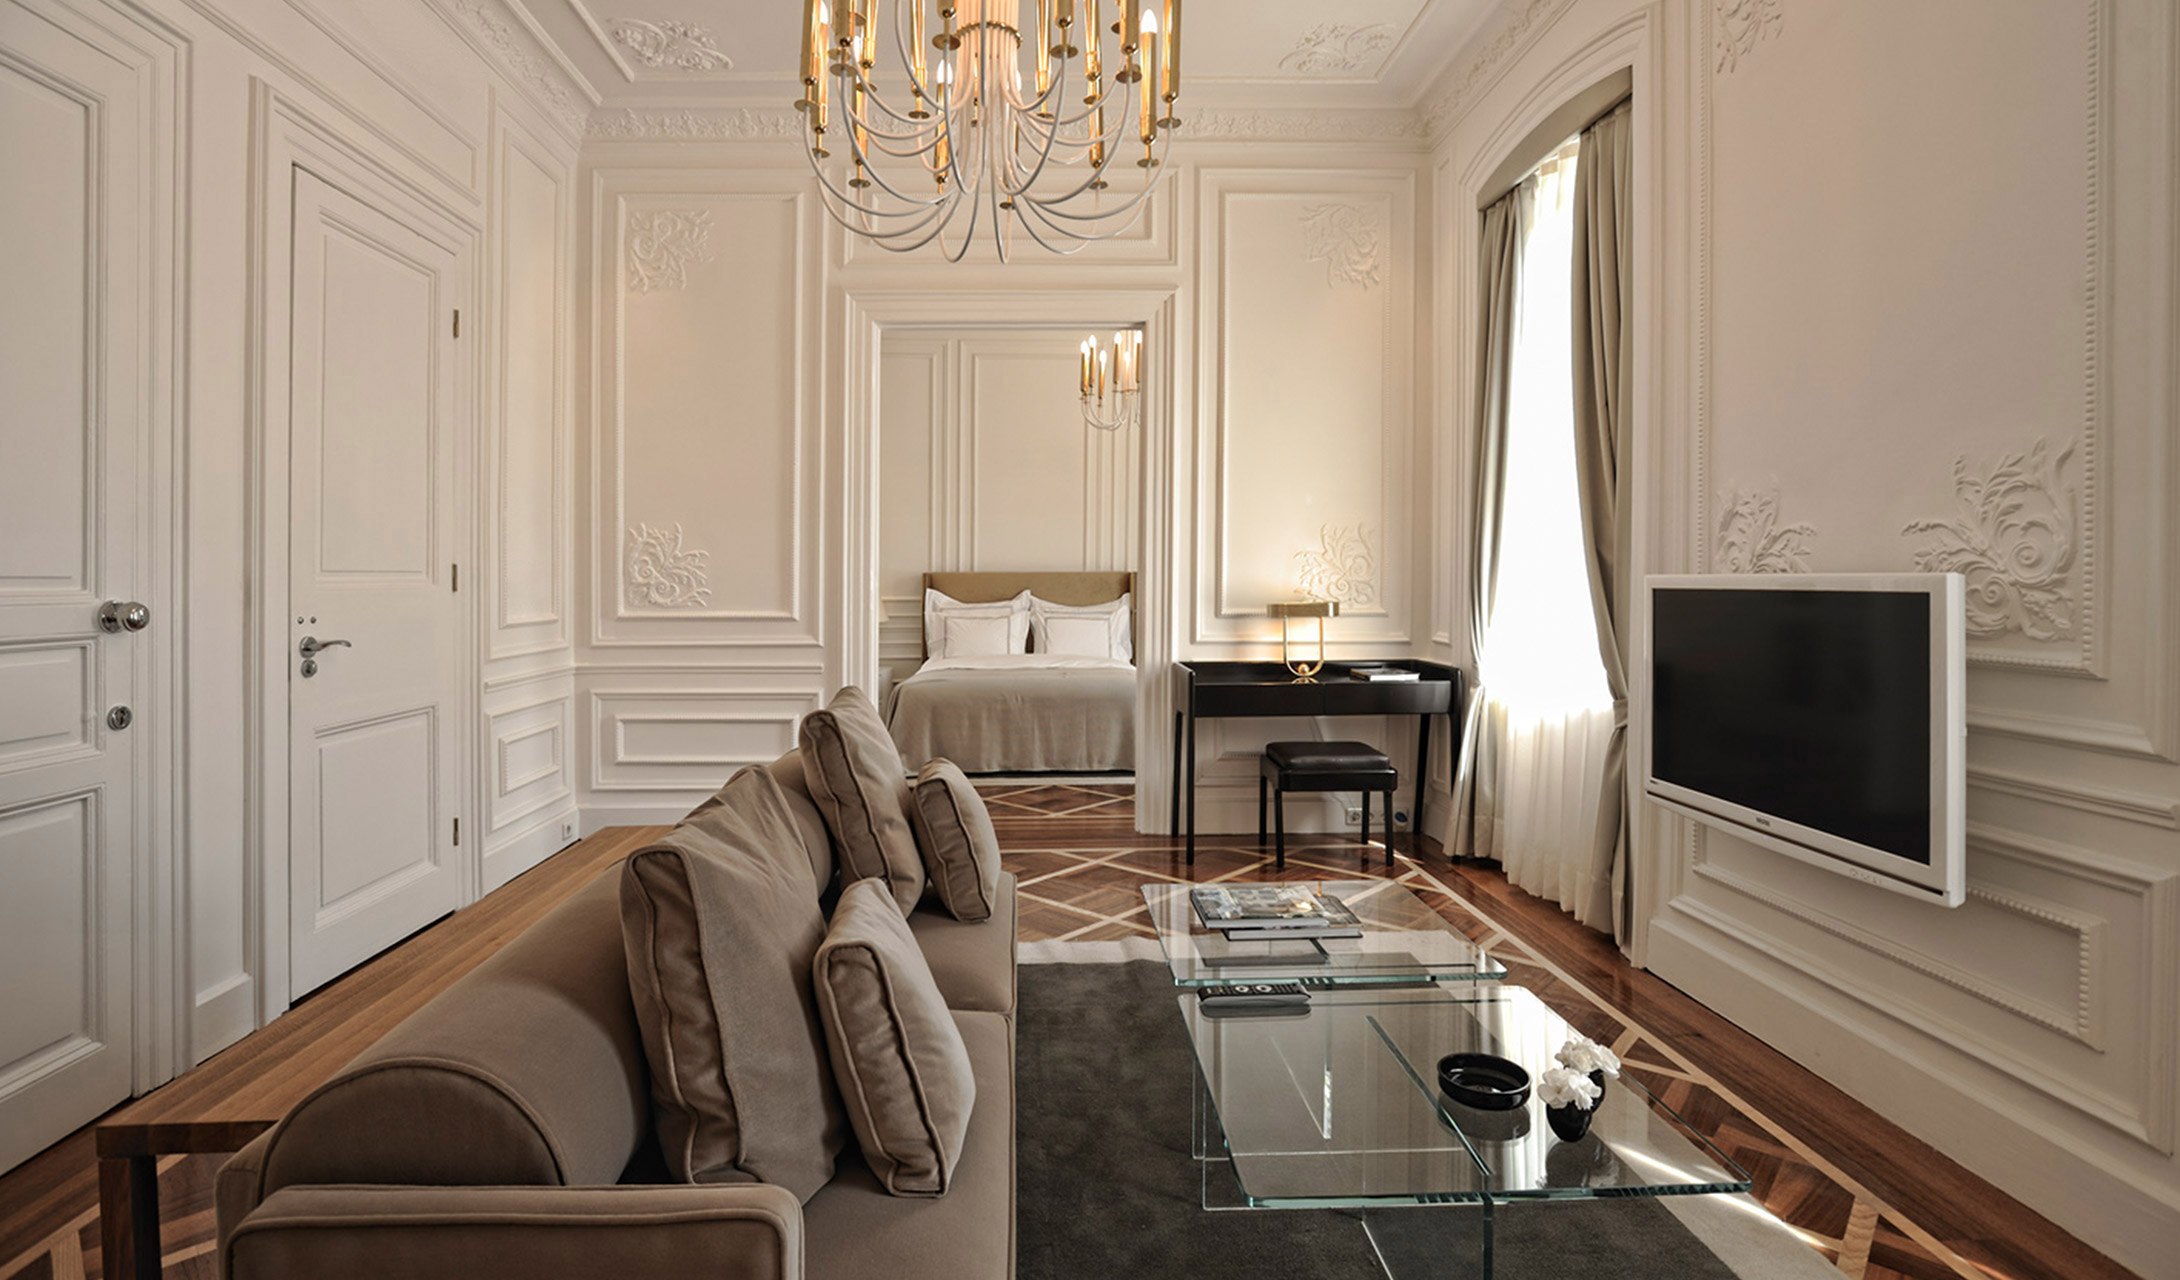 The house hotel galatasaray istanbul turkey design for Decor hotel istanbul